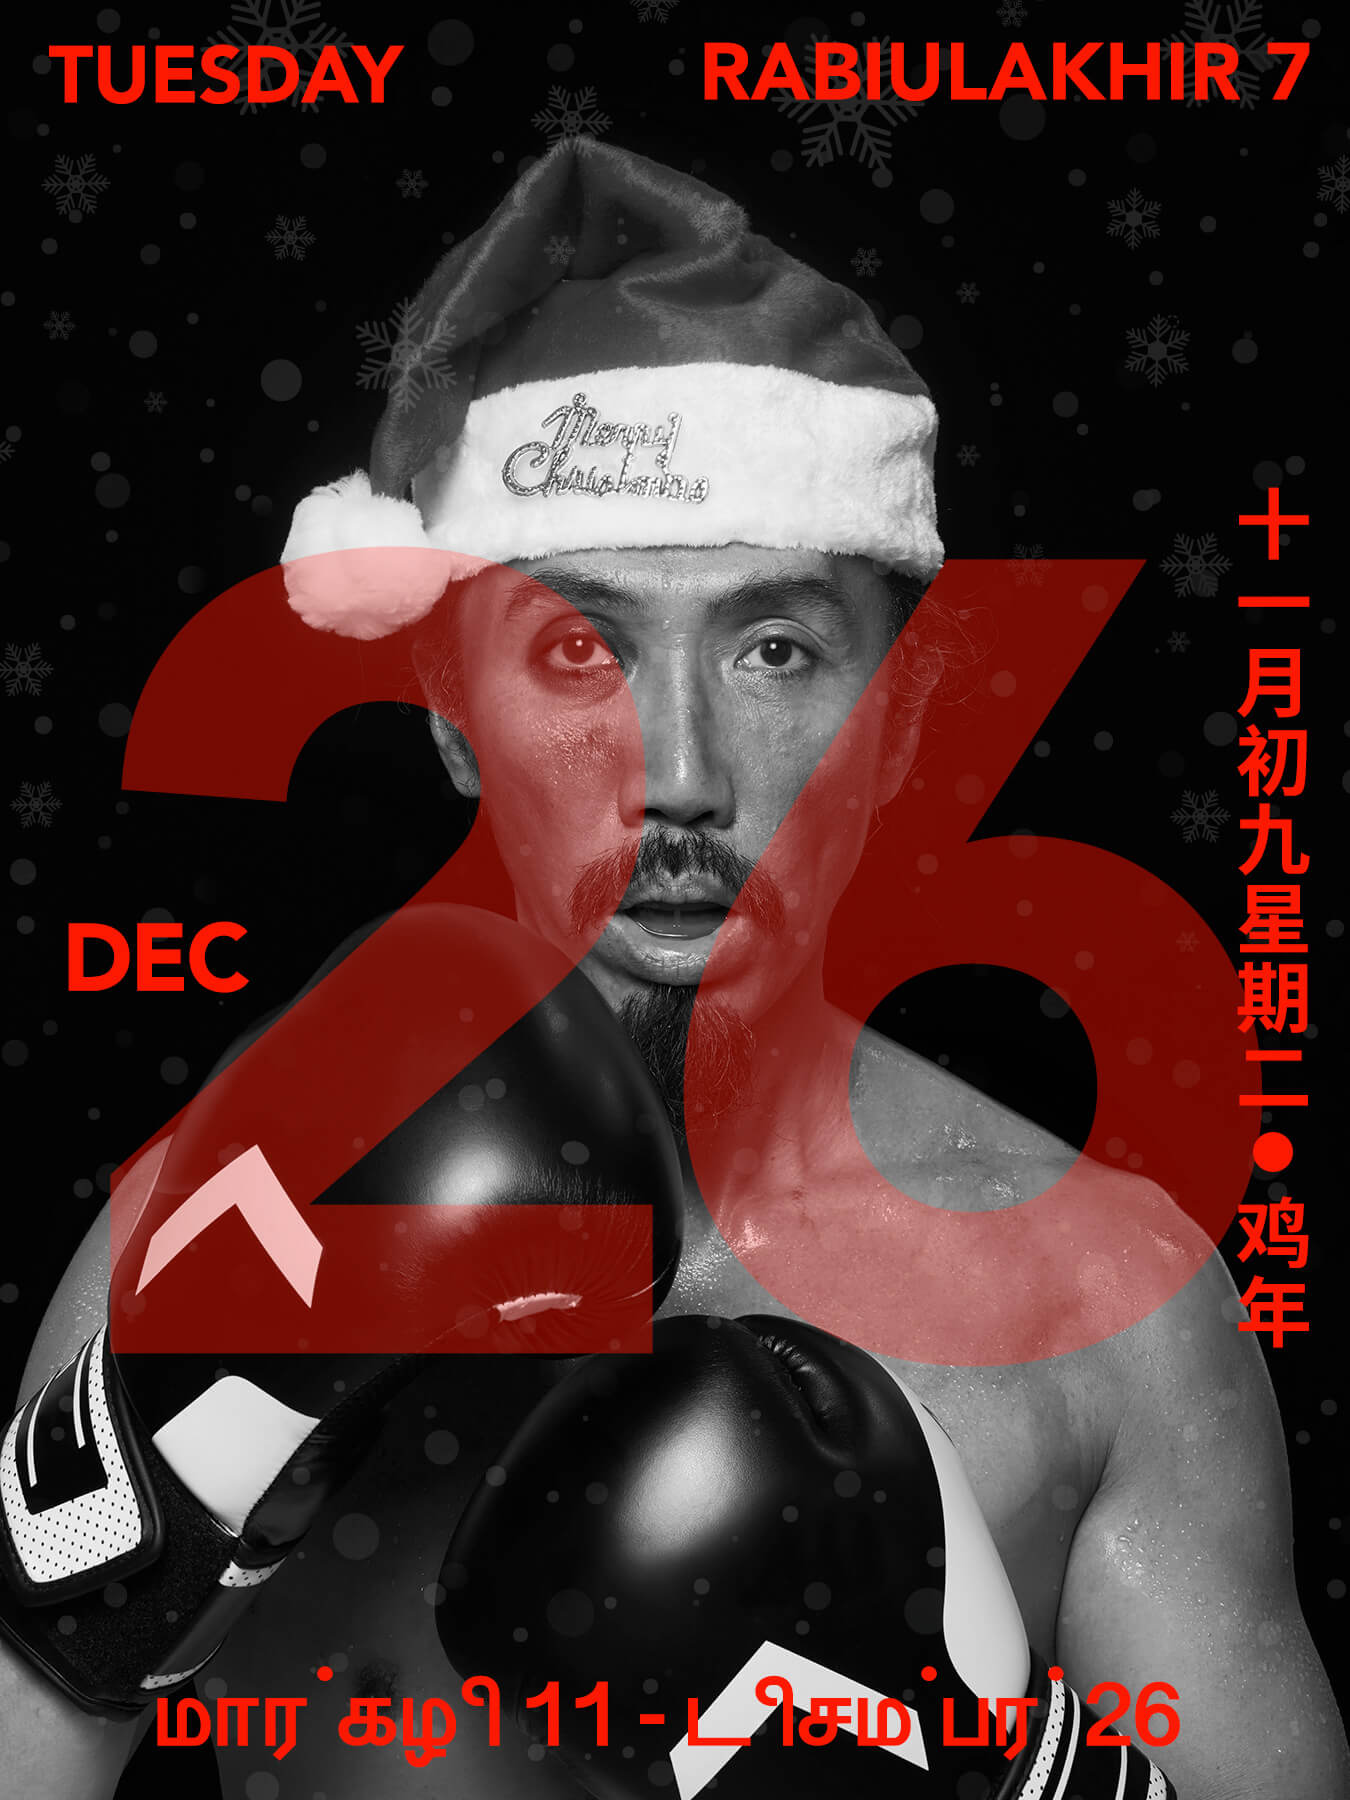 26 Dec 2017 Derong is wearing a Santa hat and boxing gloves